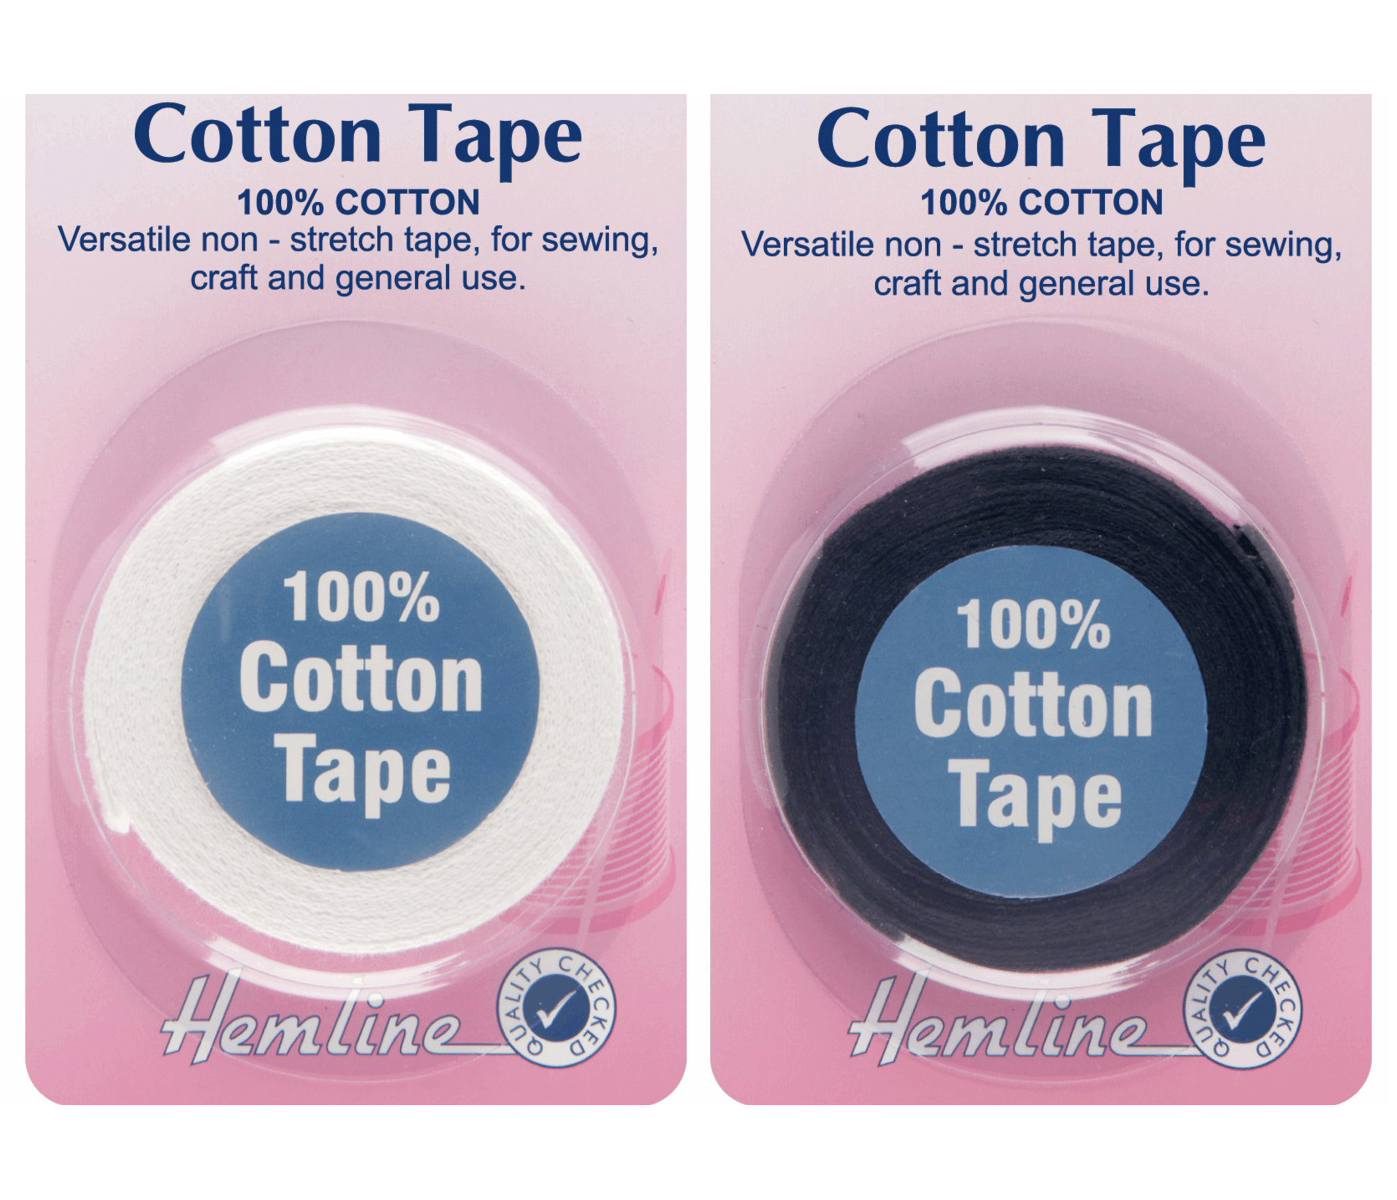 Hemline 100% Cotton Tape, 5m